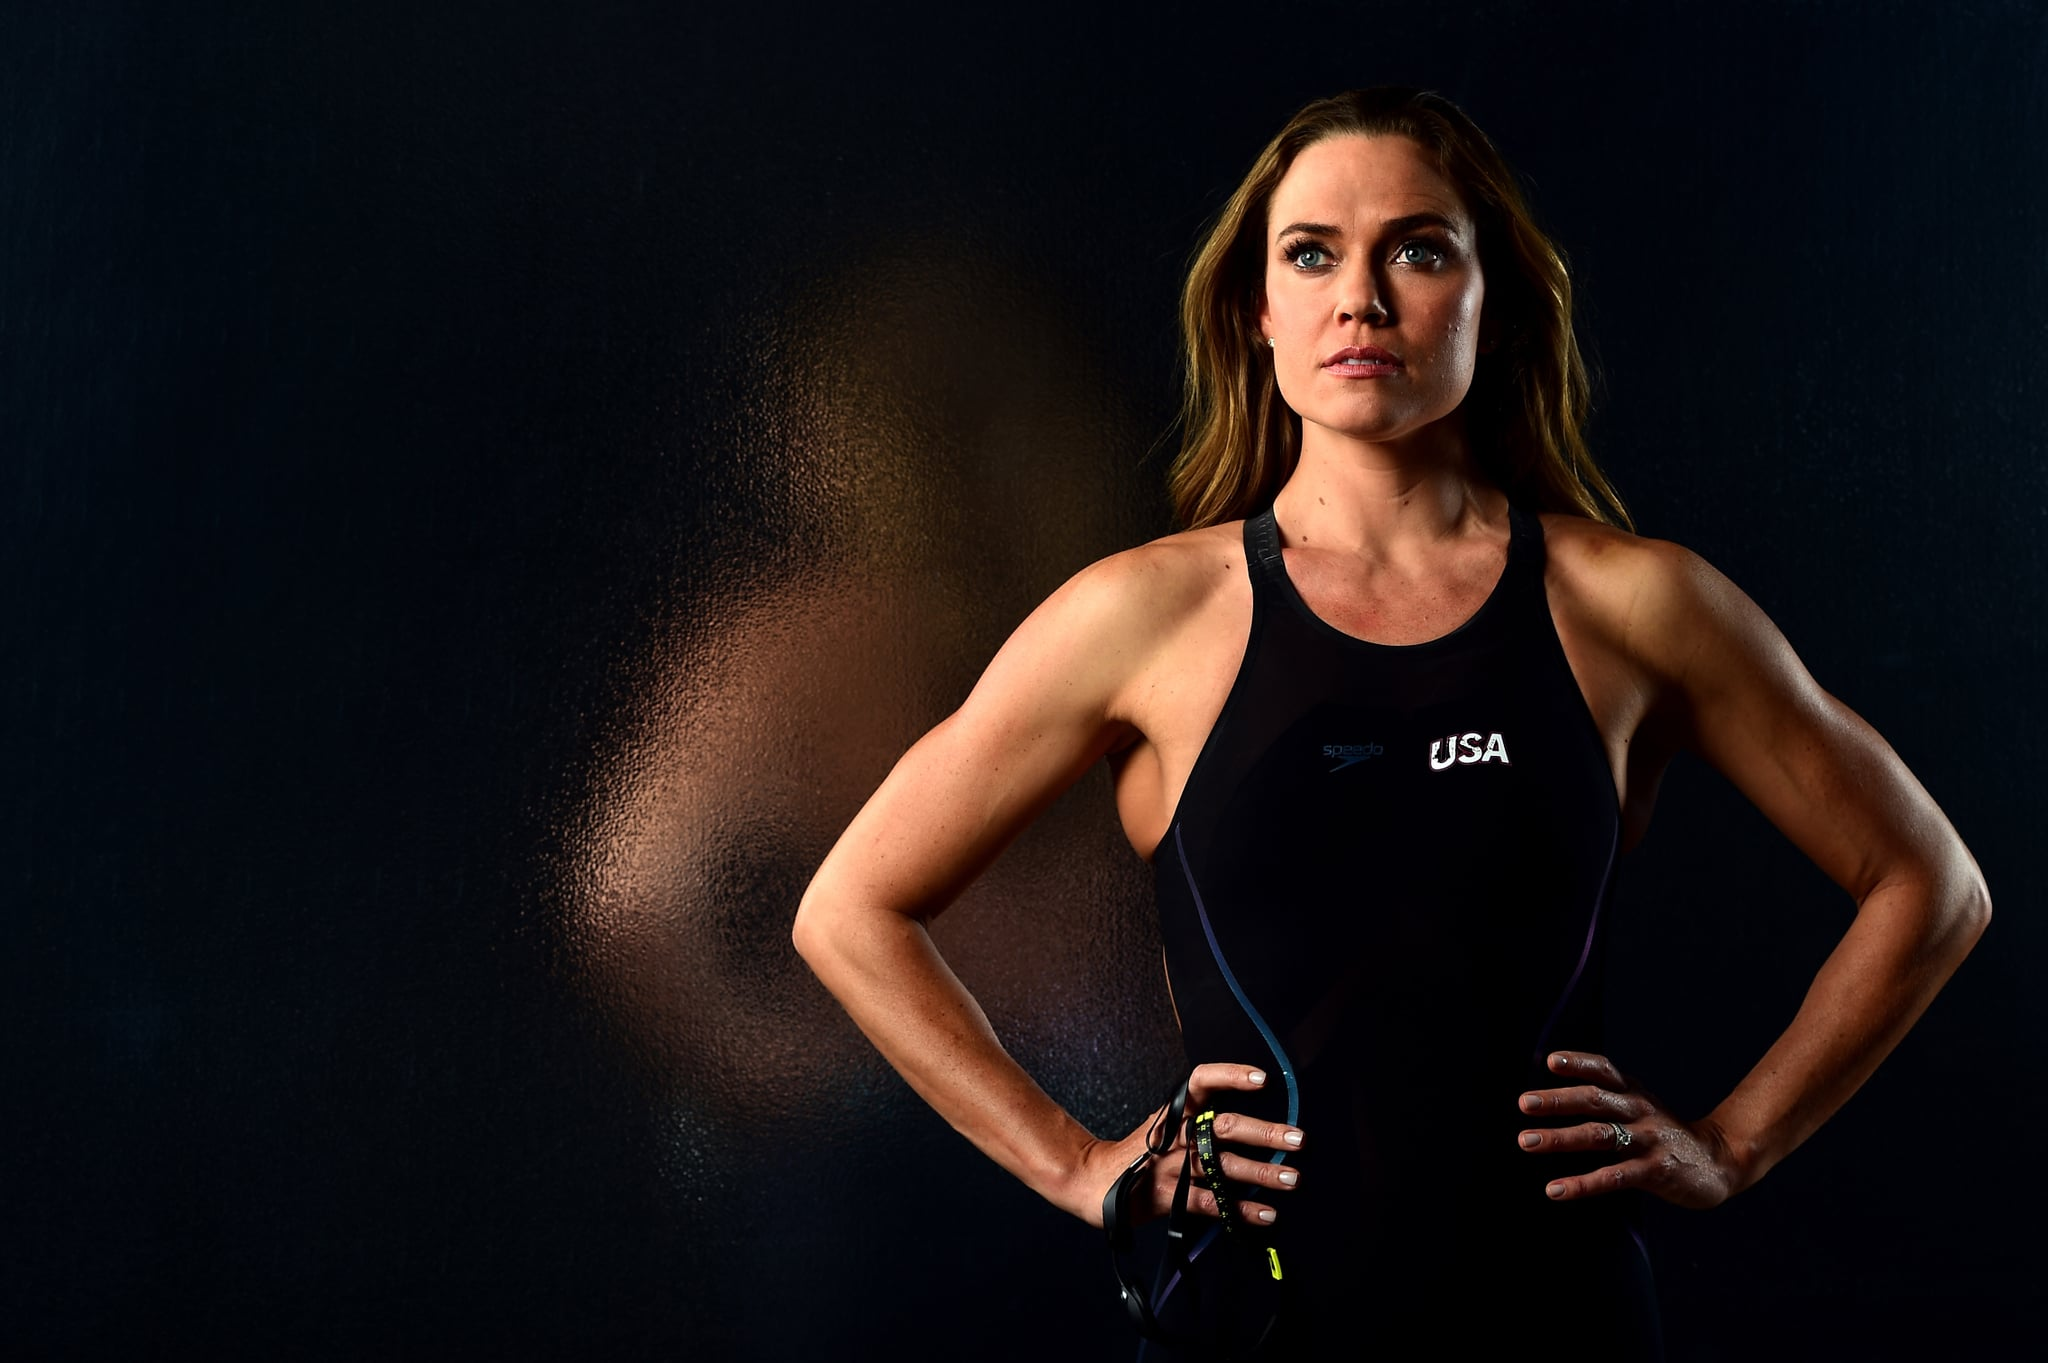 olympic swimmer natalie coughlin s training schedule attacker is gearing up again for new spam deluge